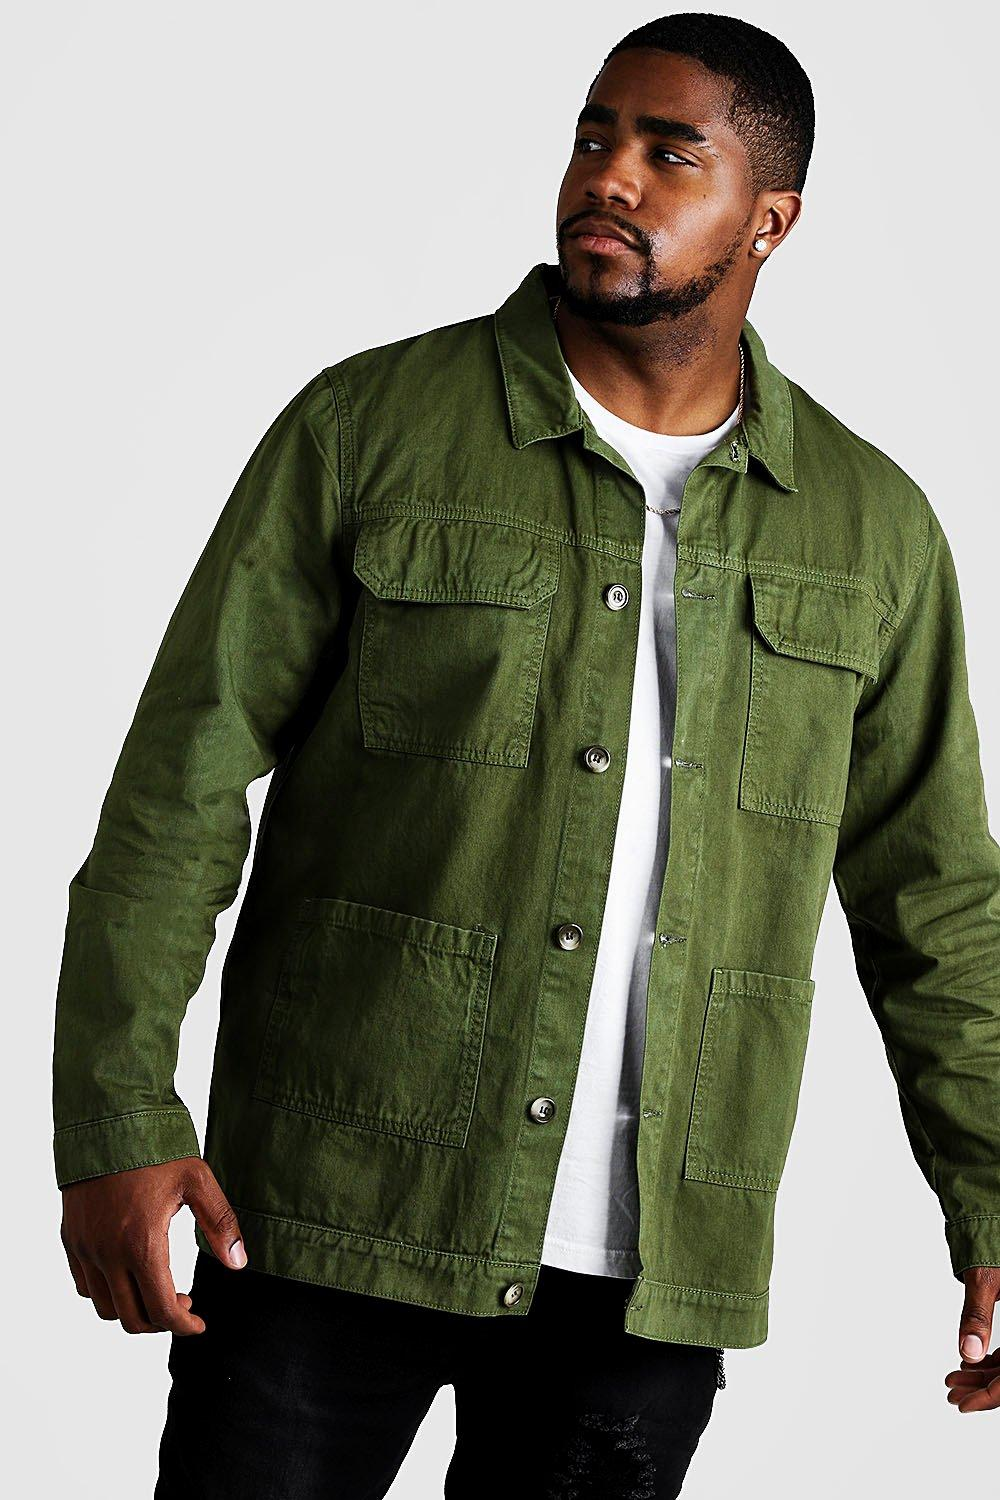 Men's Vintage Workwear – 1920s, 1930s, 1940s, 1950s Mens Big  Tall Cotton Twill Utility Overshirt - Green $24.00 AT vintagedancer.com